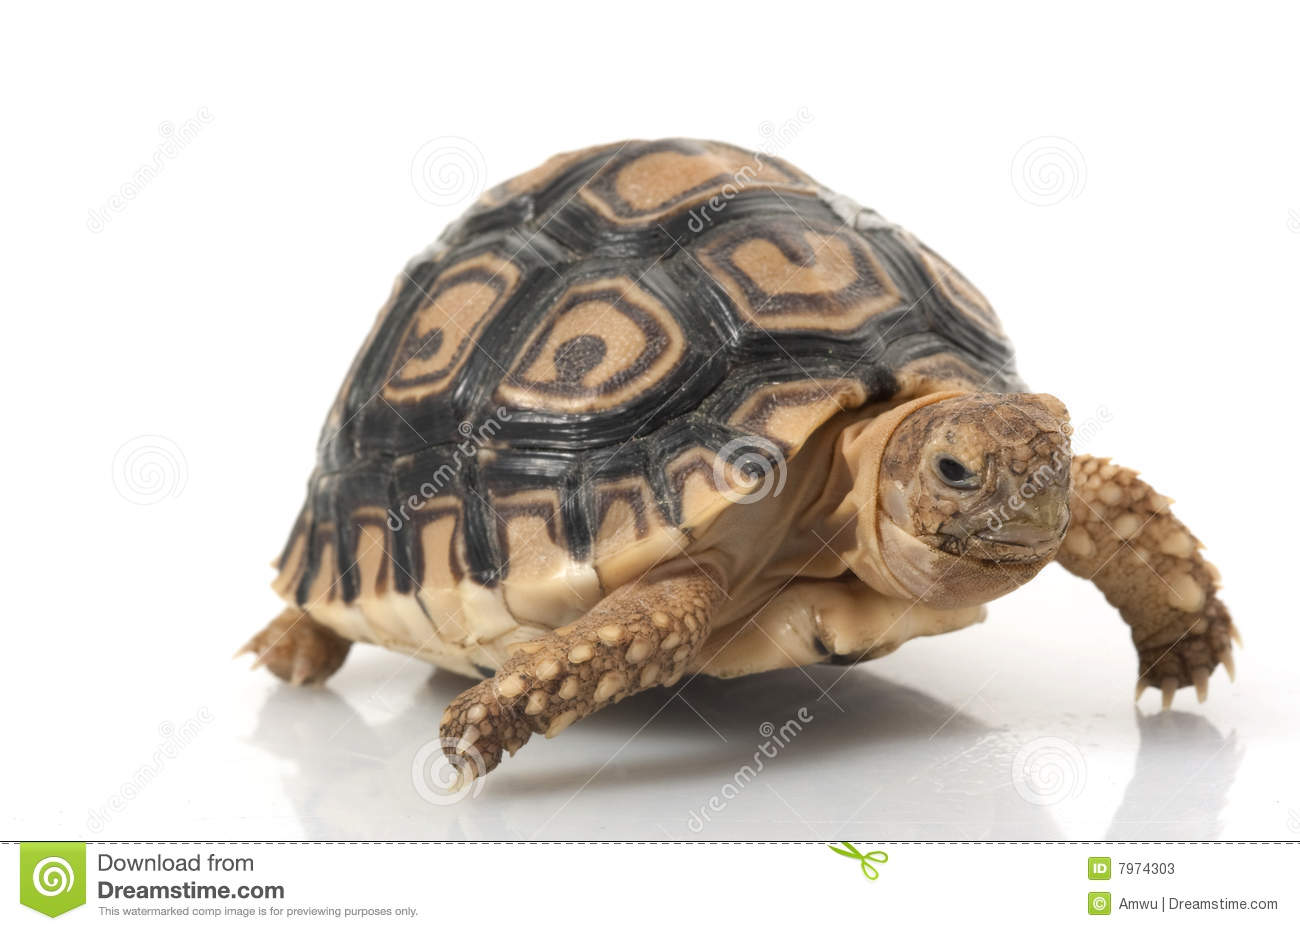 Leopard Tortoise clipart #19, Download drawings